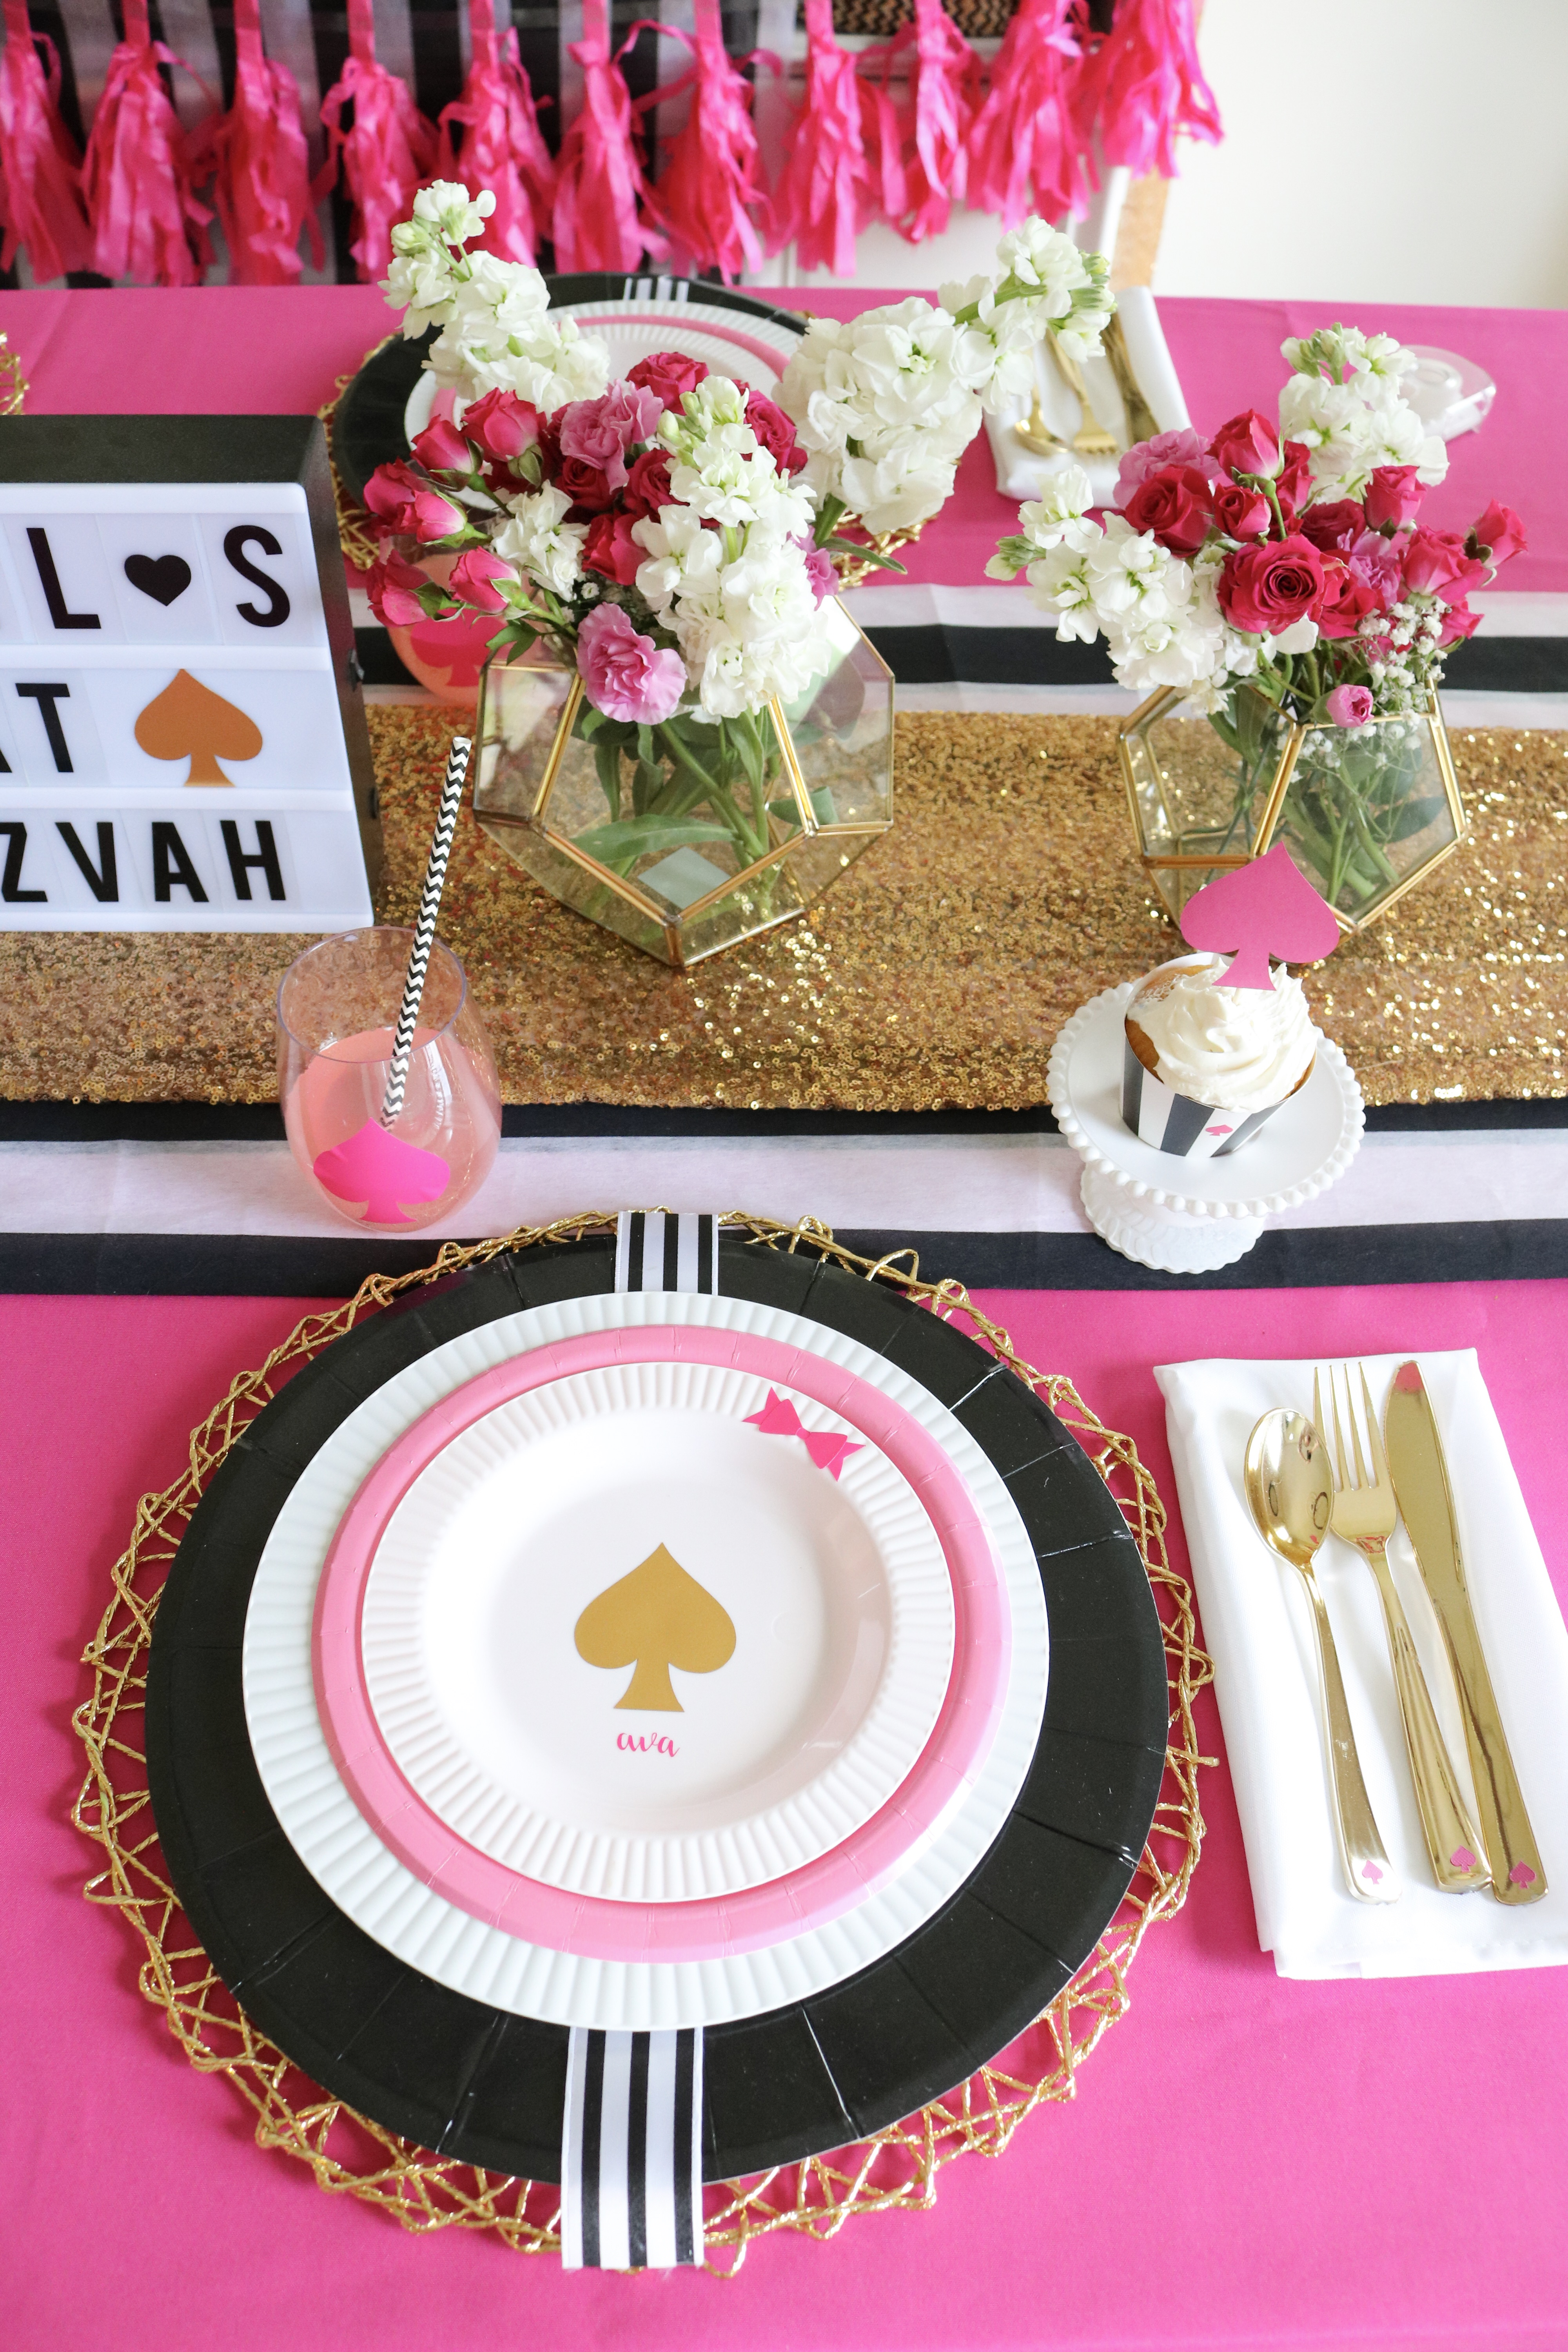 3c252d58f9a2 Kate Spade Inspired Bat Mitzvah Decor Ideas Made Easy with Cricut - PLUS  GIVEAWAY!